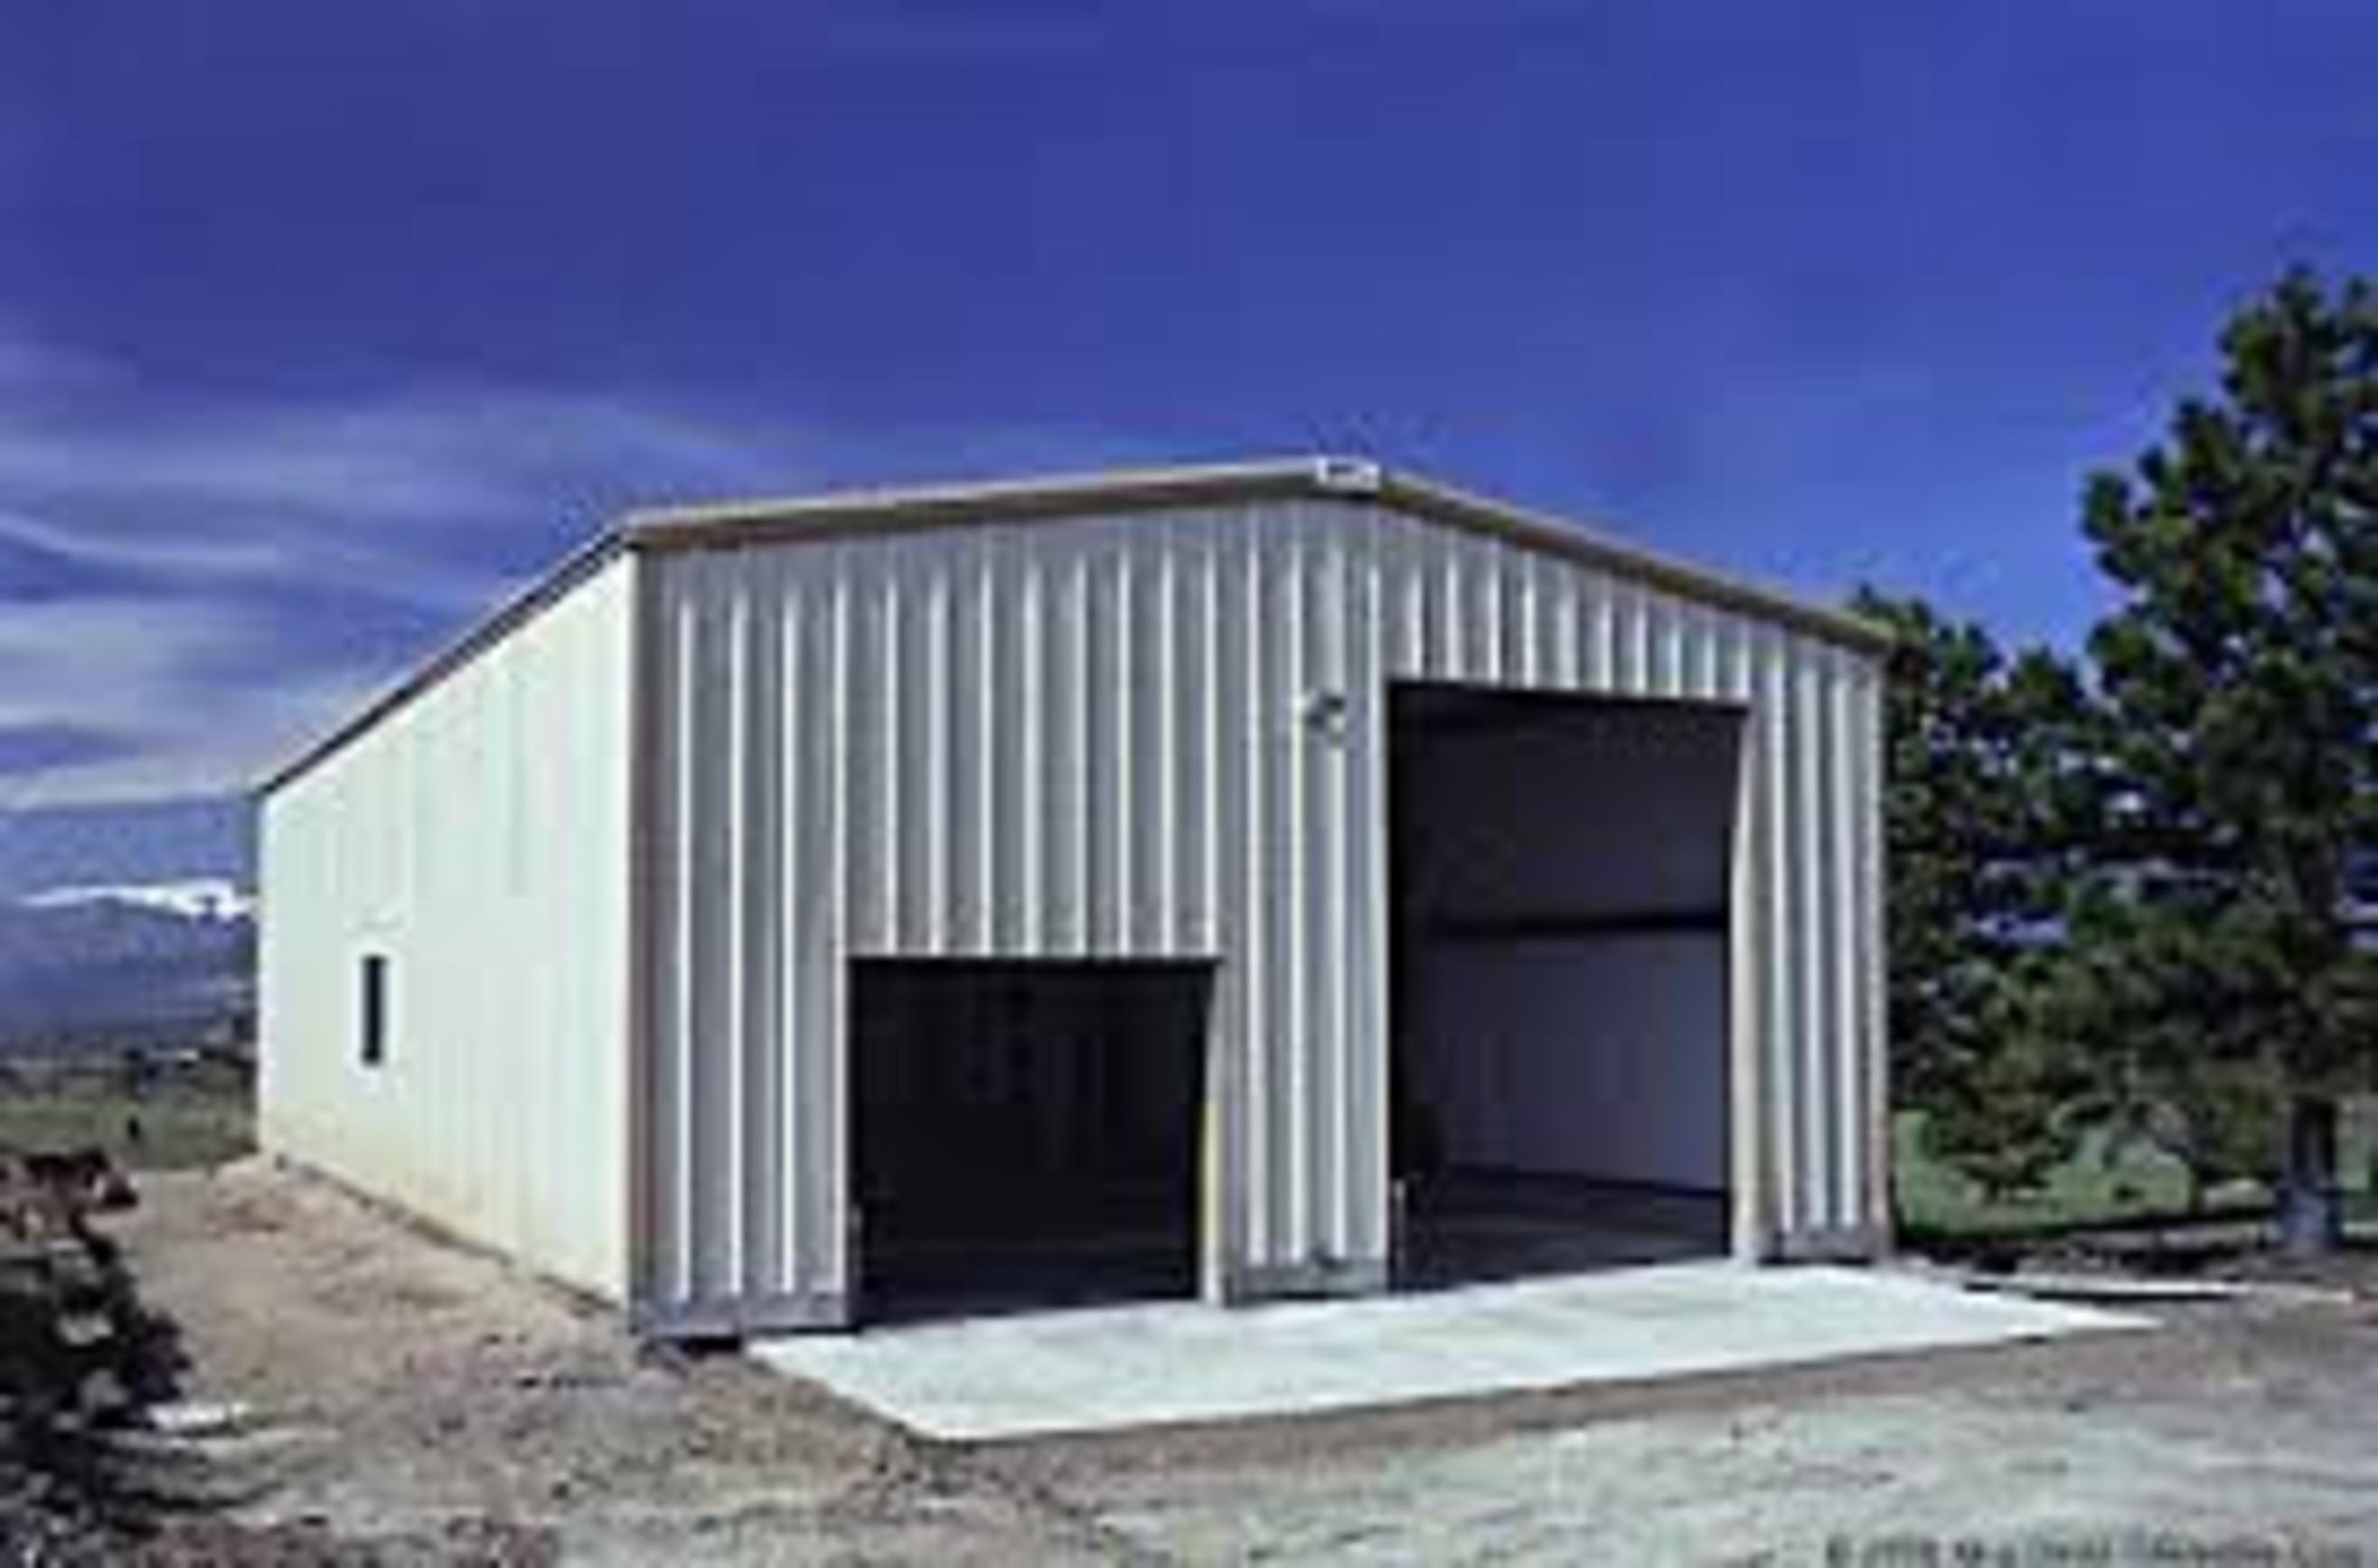 Casacontainer as well The Garage as well Shed With Lean To Wood Shed Plans And Blueprints also Carports moreover Red Iron Kits Florida Fl Packages. on carport with storage building